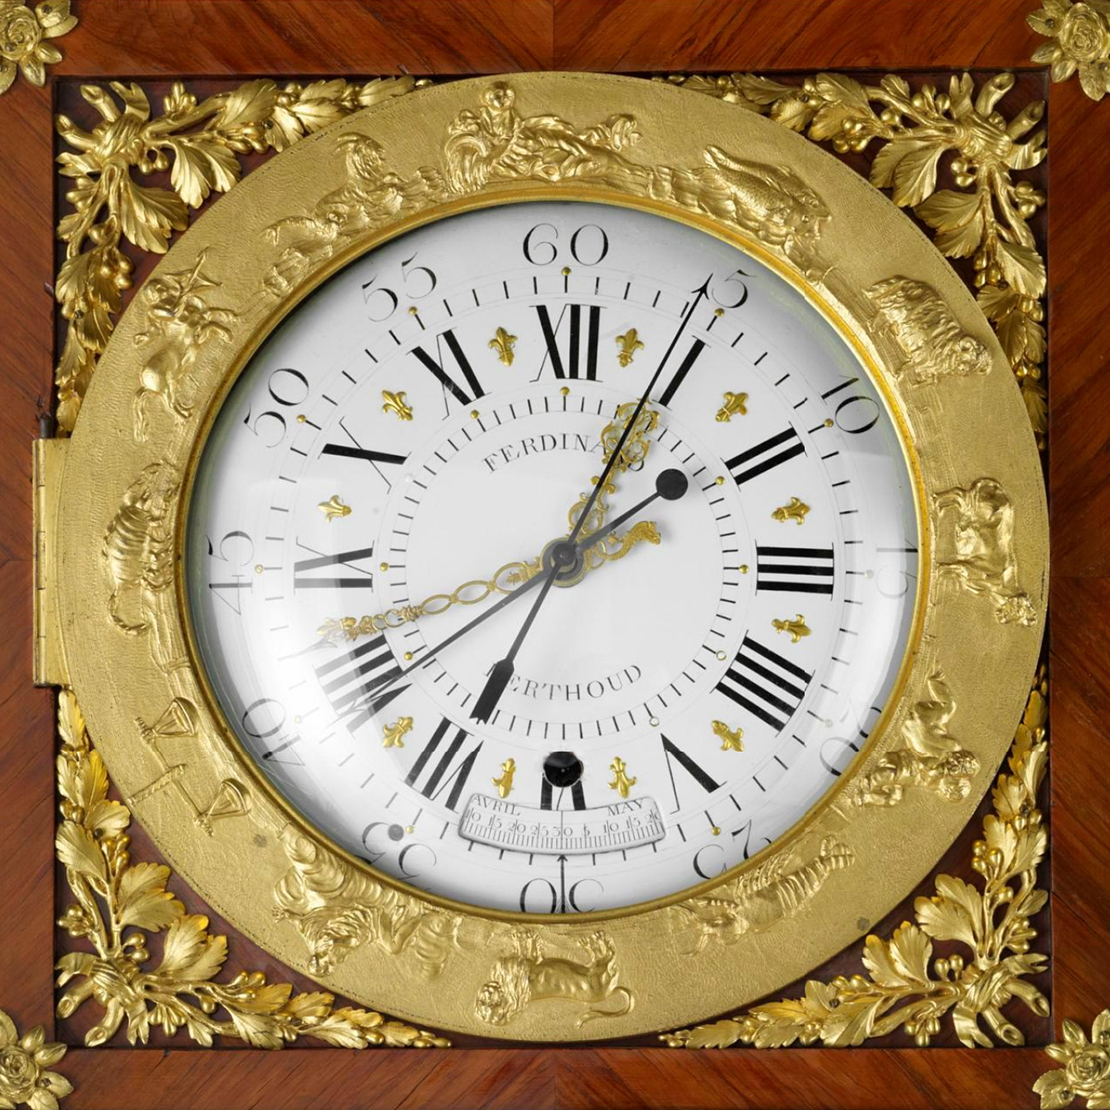 Ornamented clock face surrounded by a gilt bronze band decorated with reliefs of the signs of the zodiac, gold foliage, and a square wooden frame